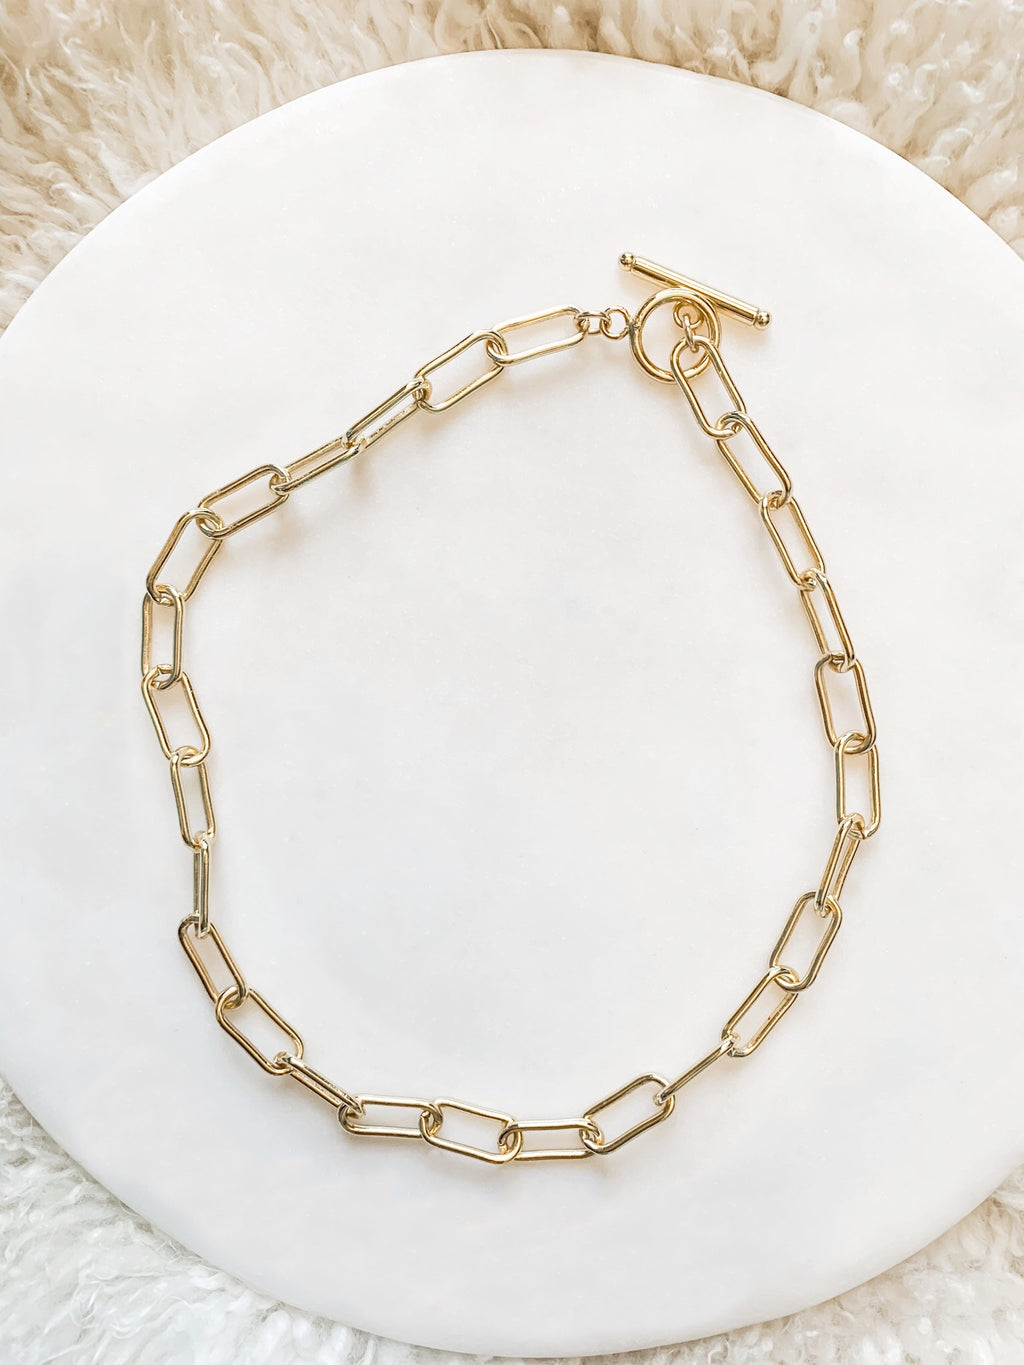 Gold Filled Paperclip Choker - The Pretty Eclectic